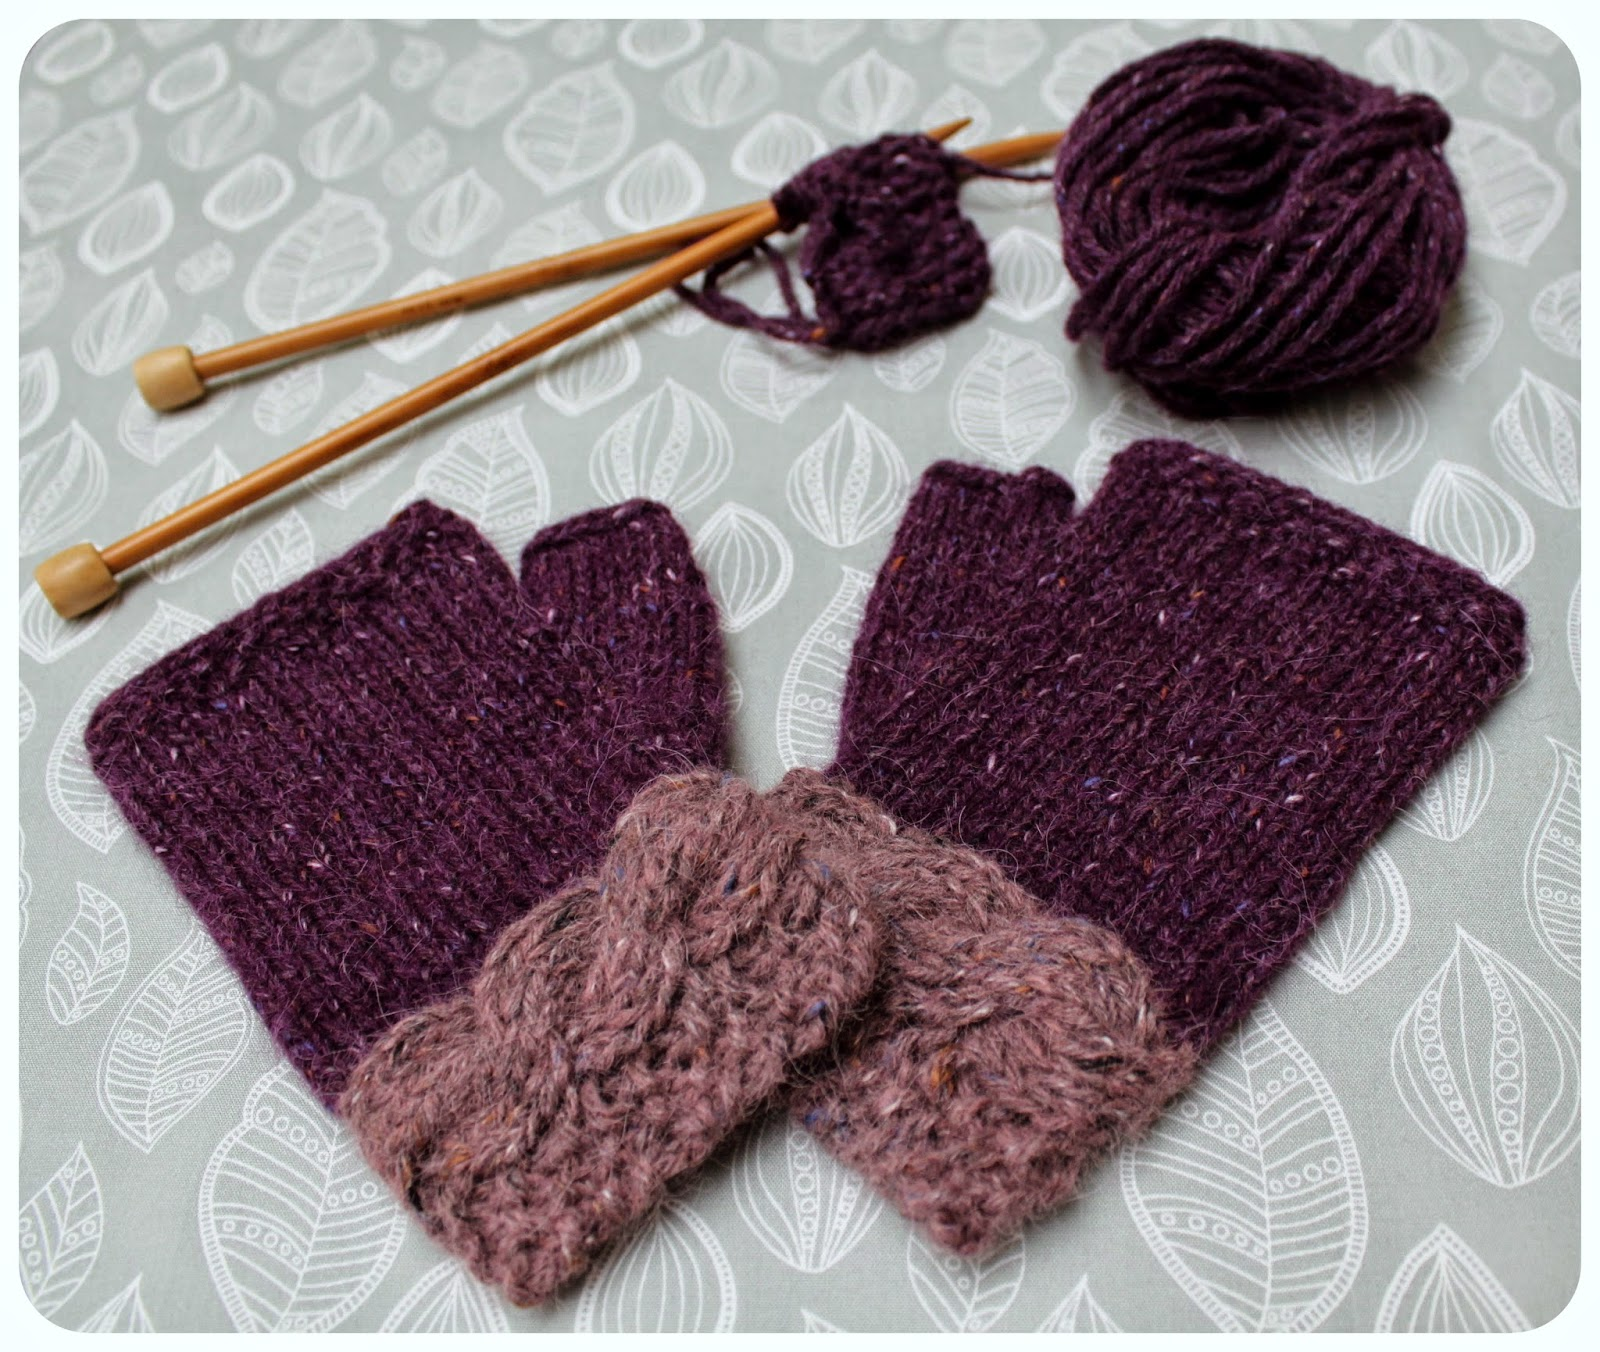 Hand Knitted Things: Mulberry Fingerless Gloves